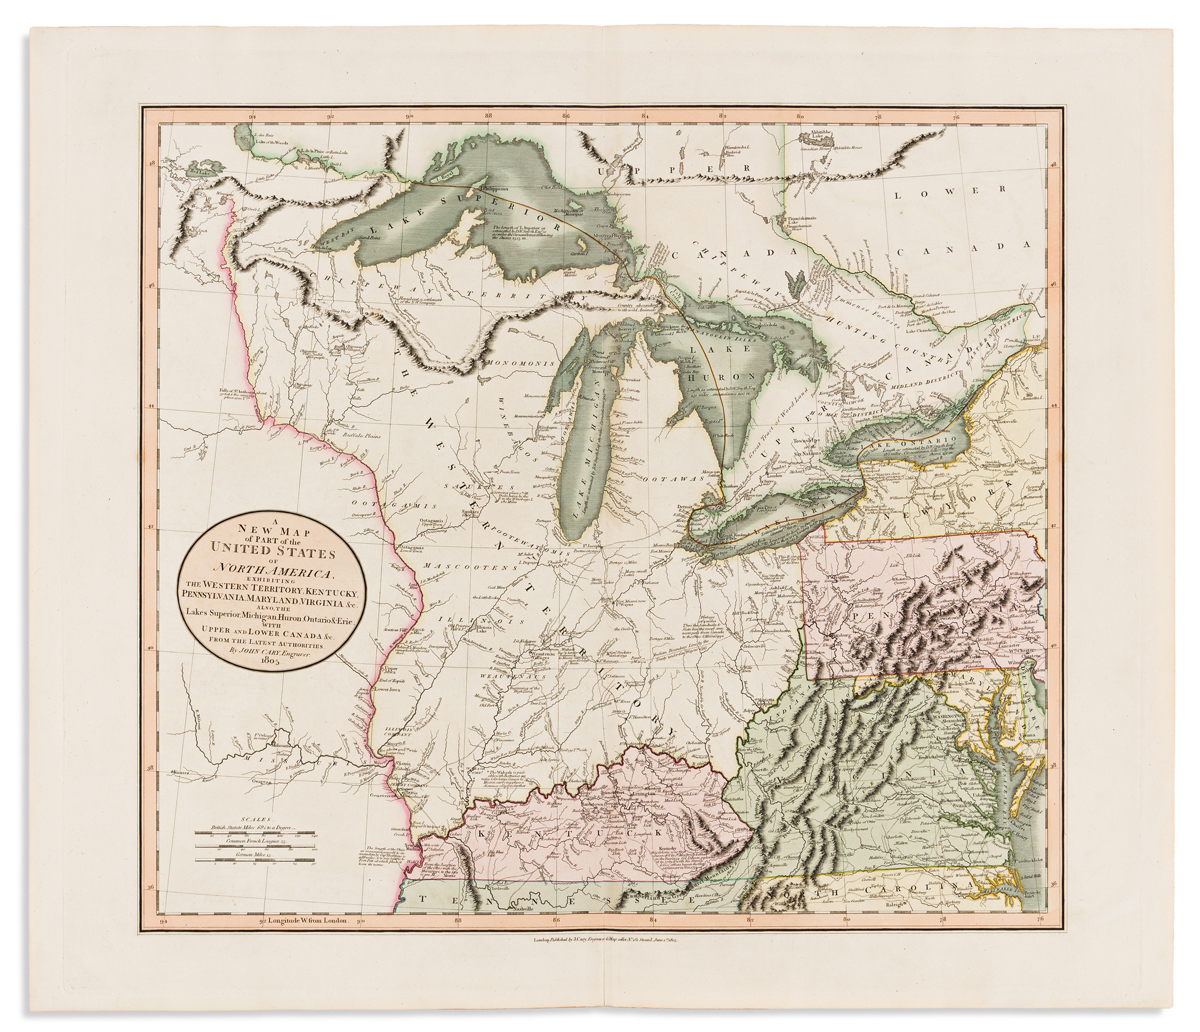 CARY, JOHN. A New Map of Part of the United States of North America, Exhibiting the Western Territory,